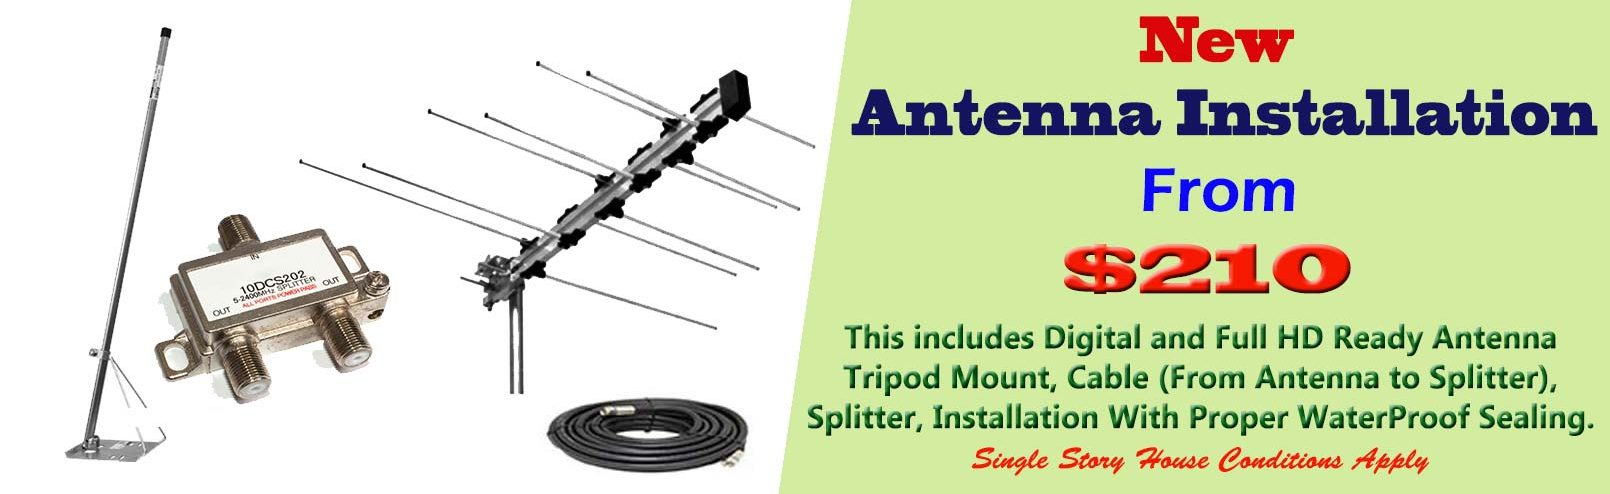 Digital Antenna Installations